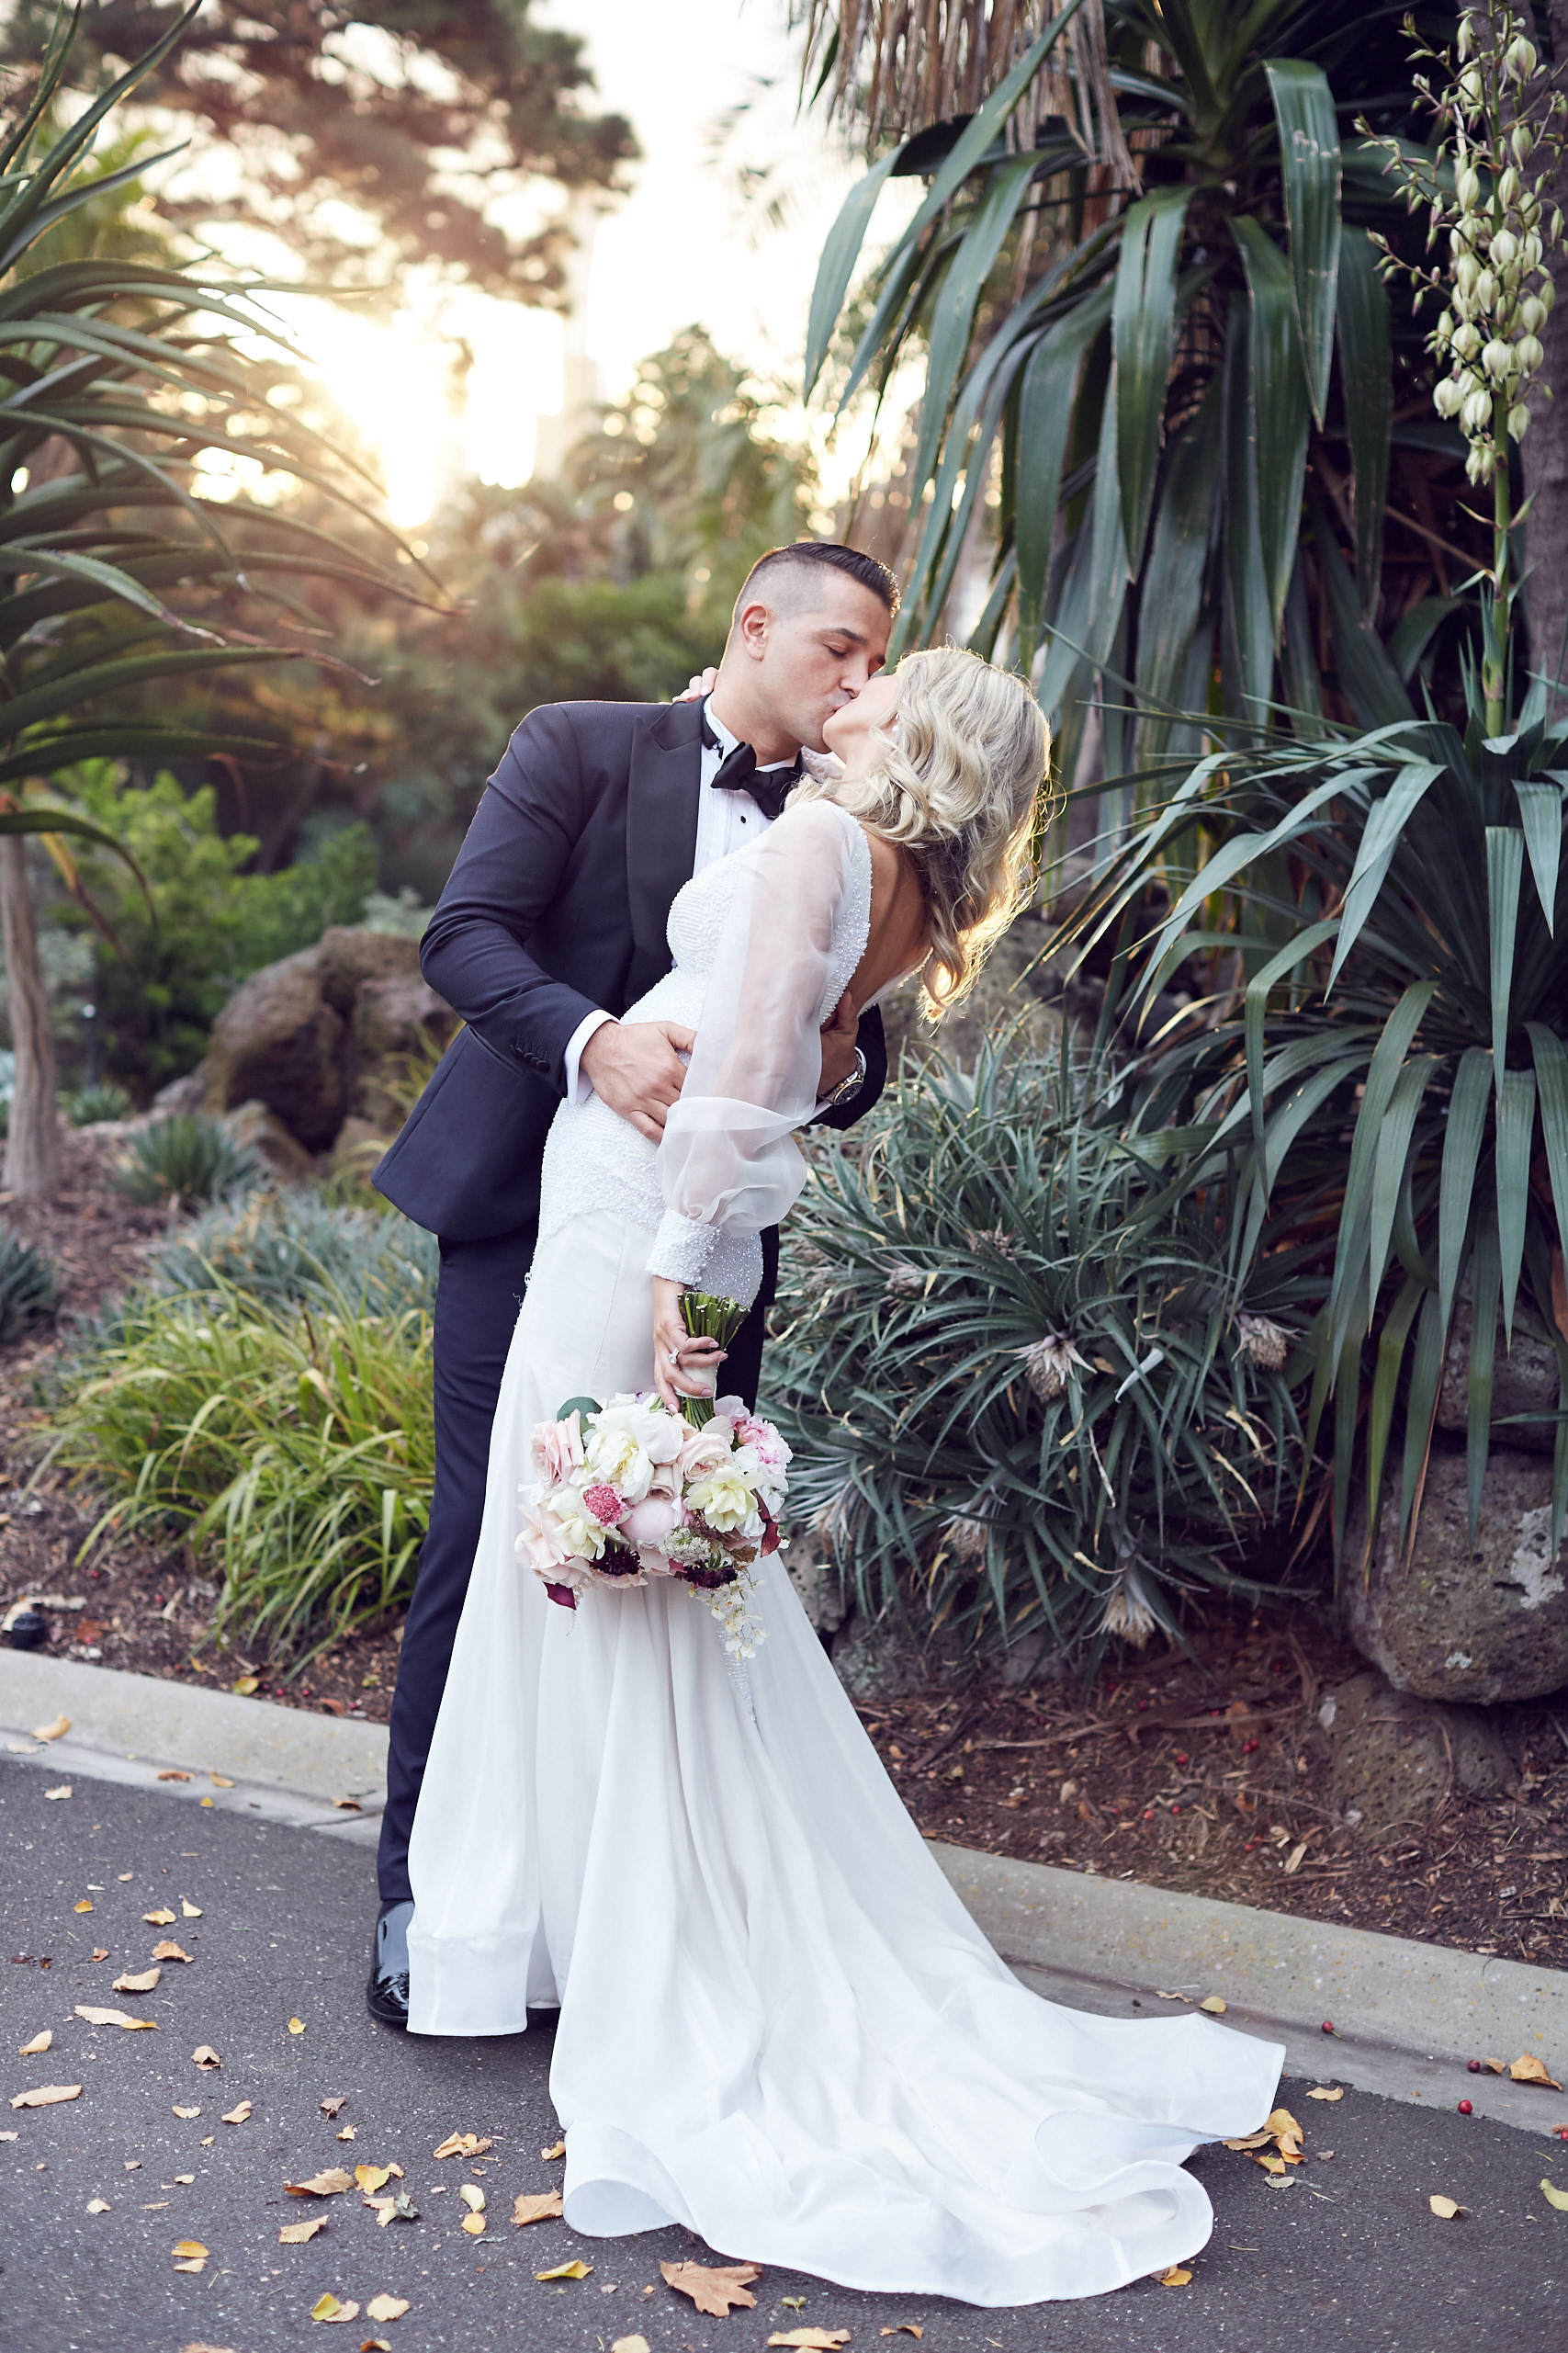 Garden Wedding Lost In Love Photography